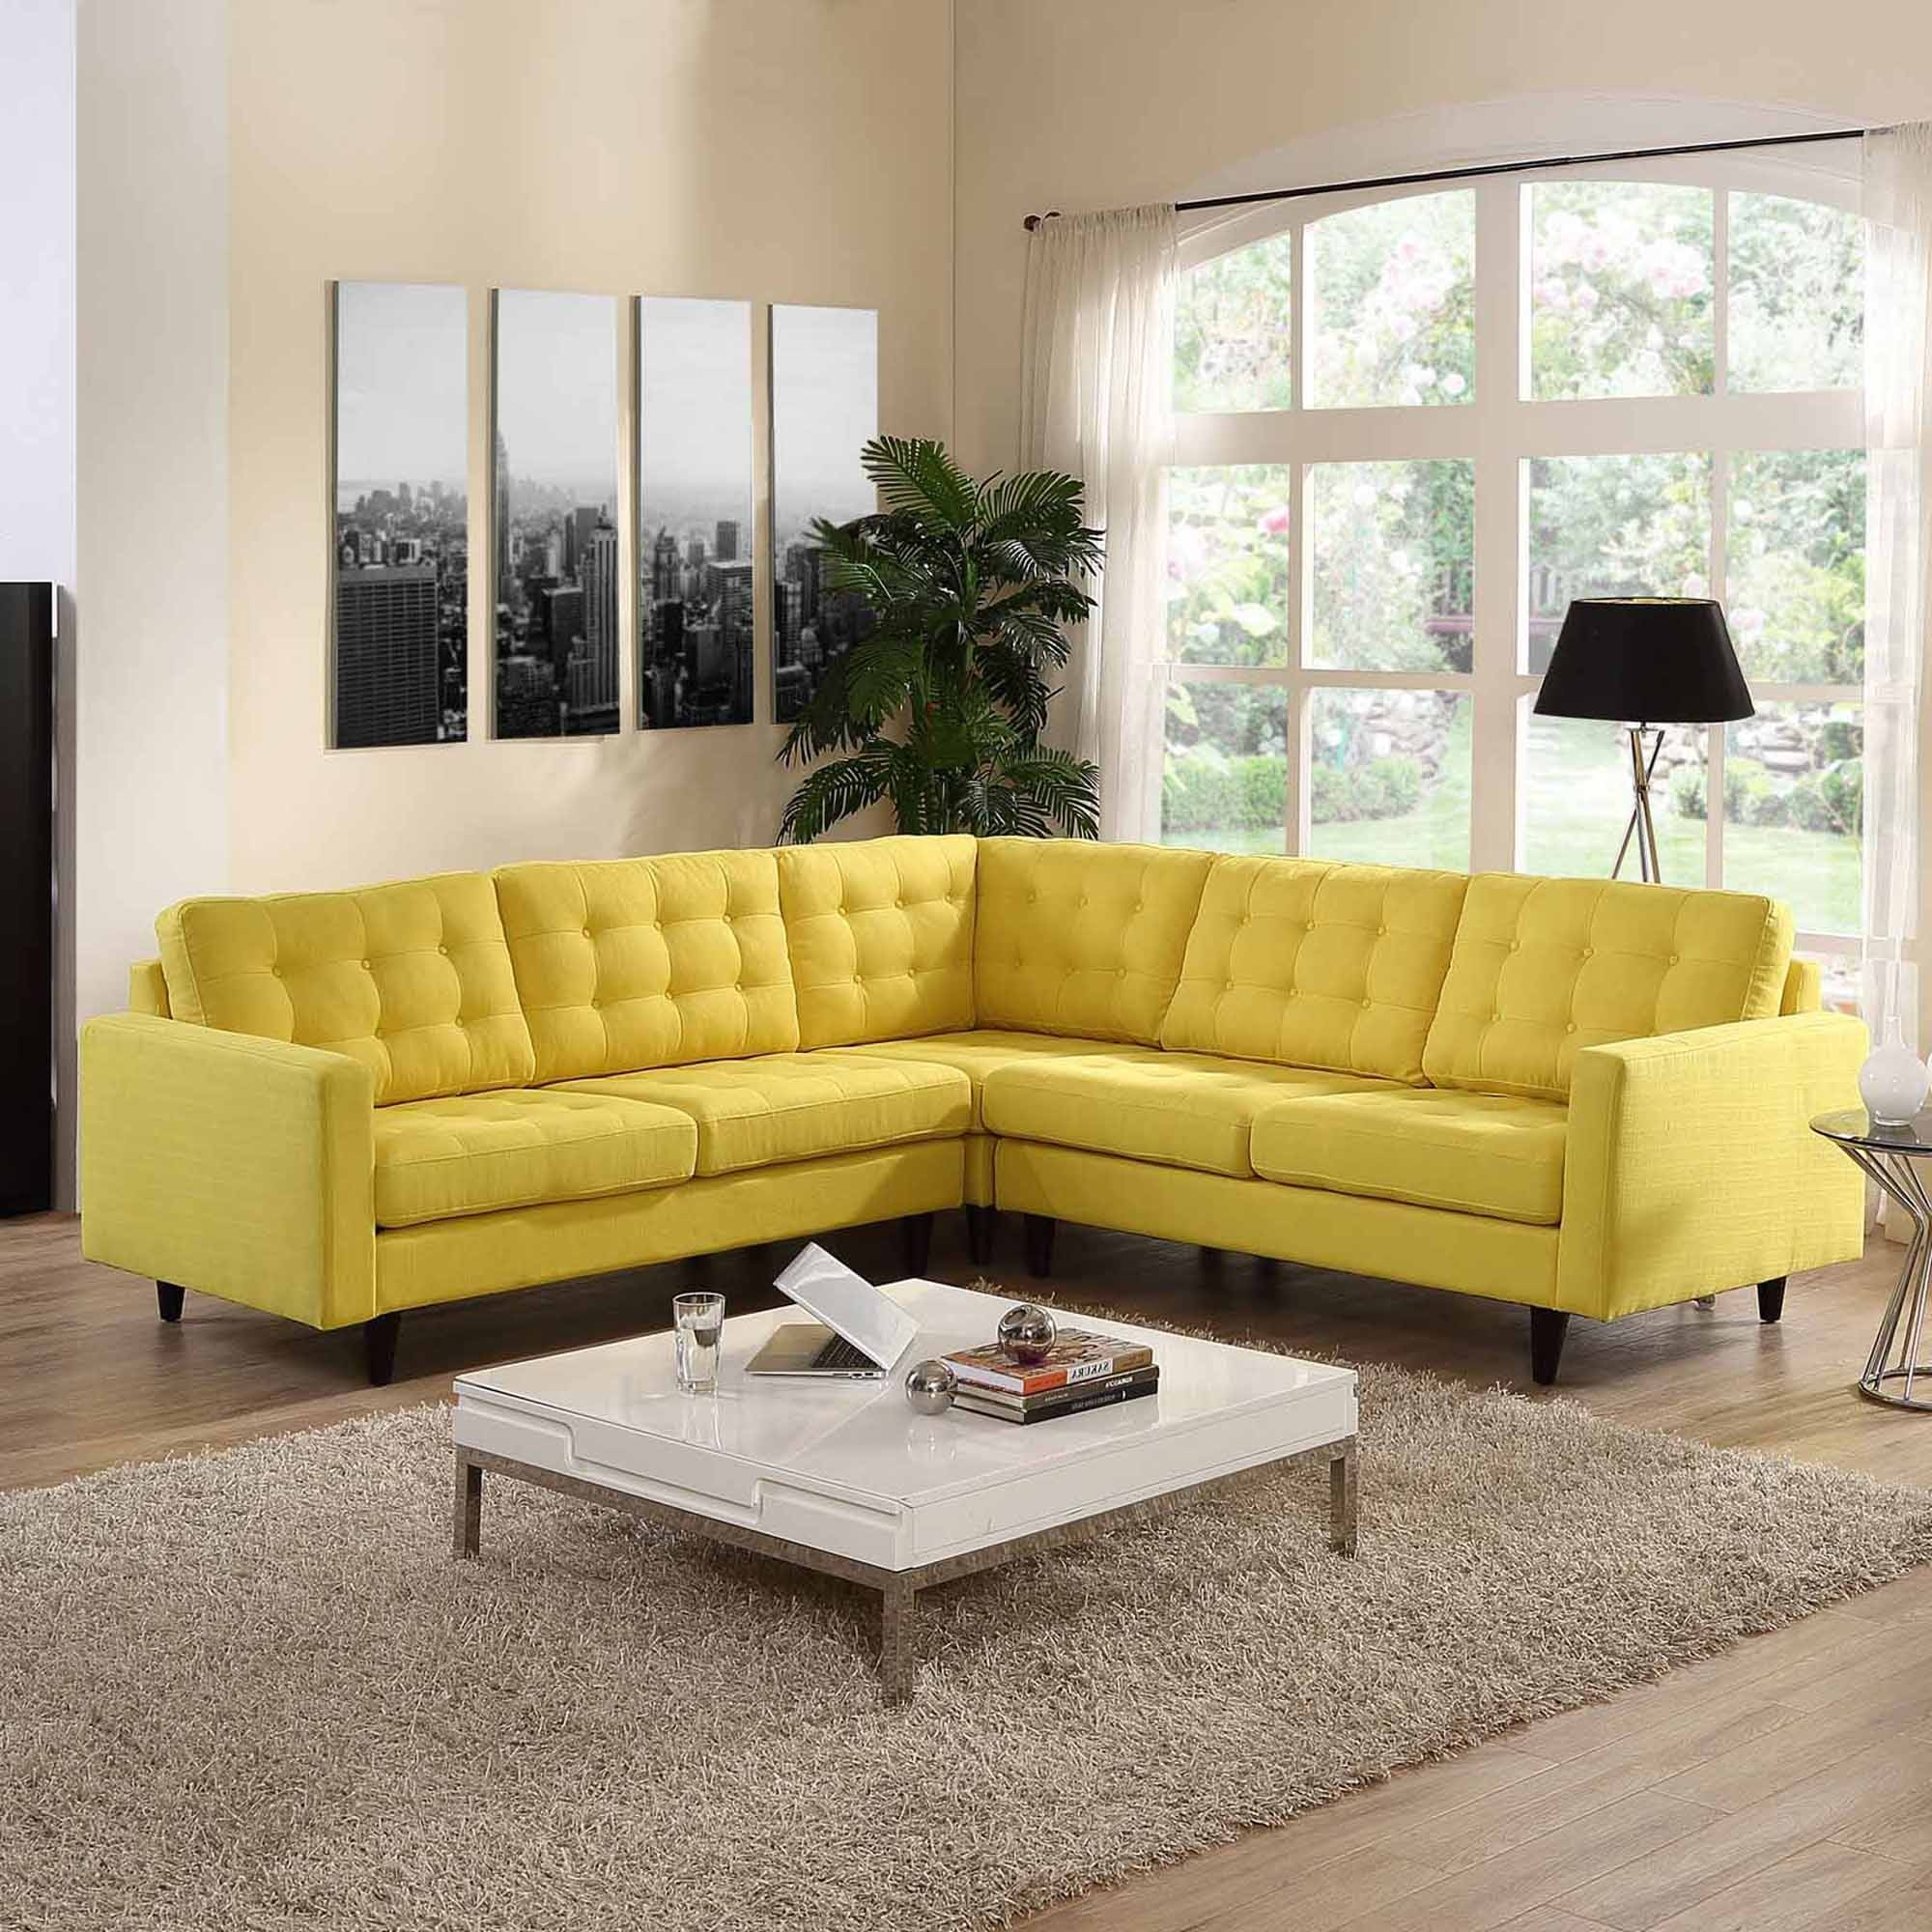 Popular Peterborough Ontario Sectional Sofas With Furniture : Sofa Sale Quick Delivery Sofa Craigslist Lafayette (View 17 of 20)